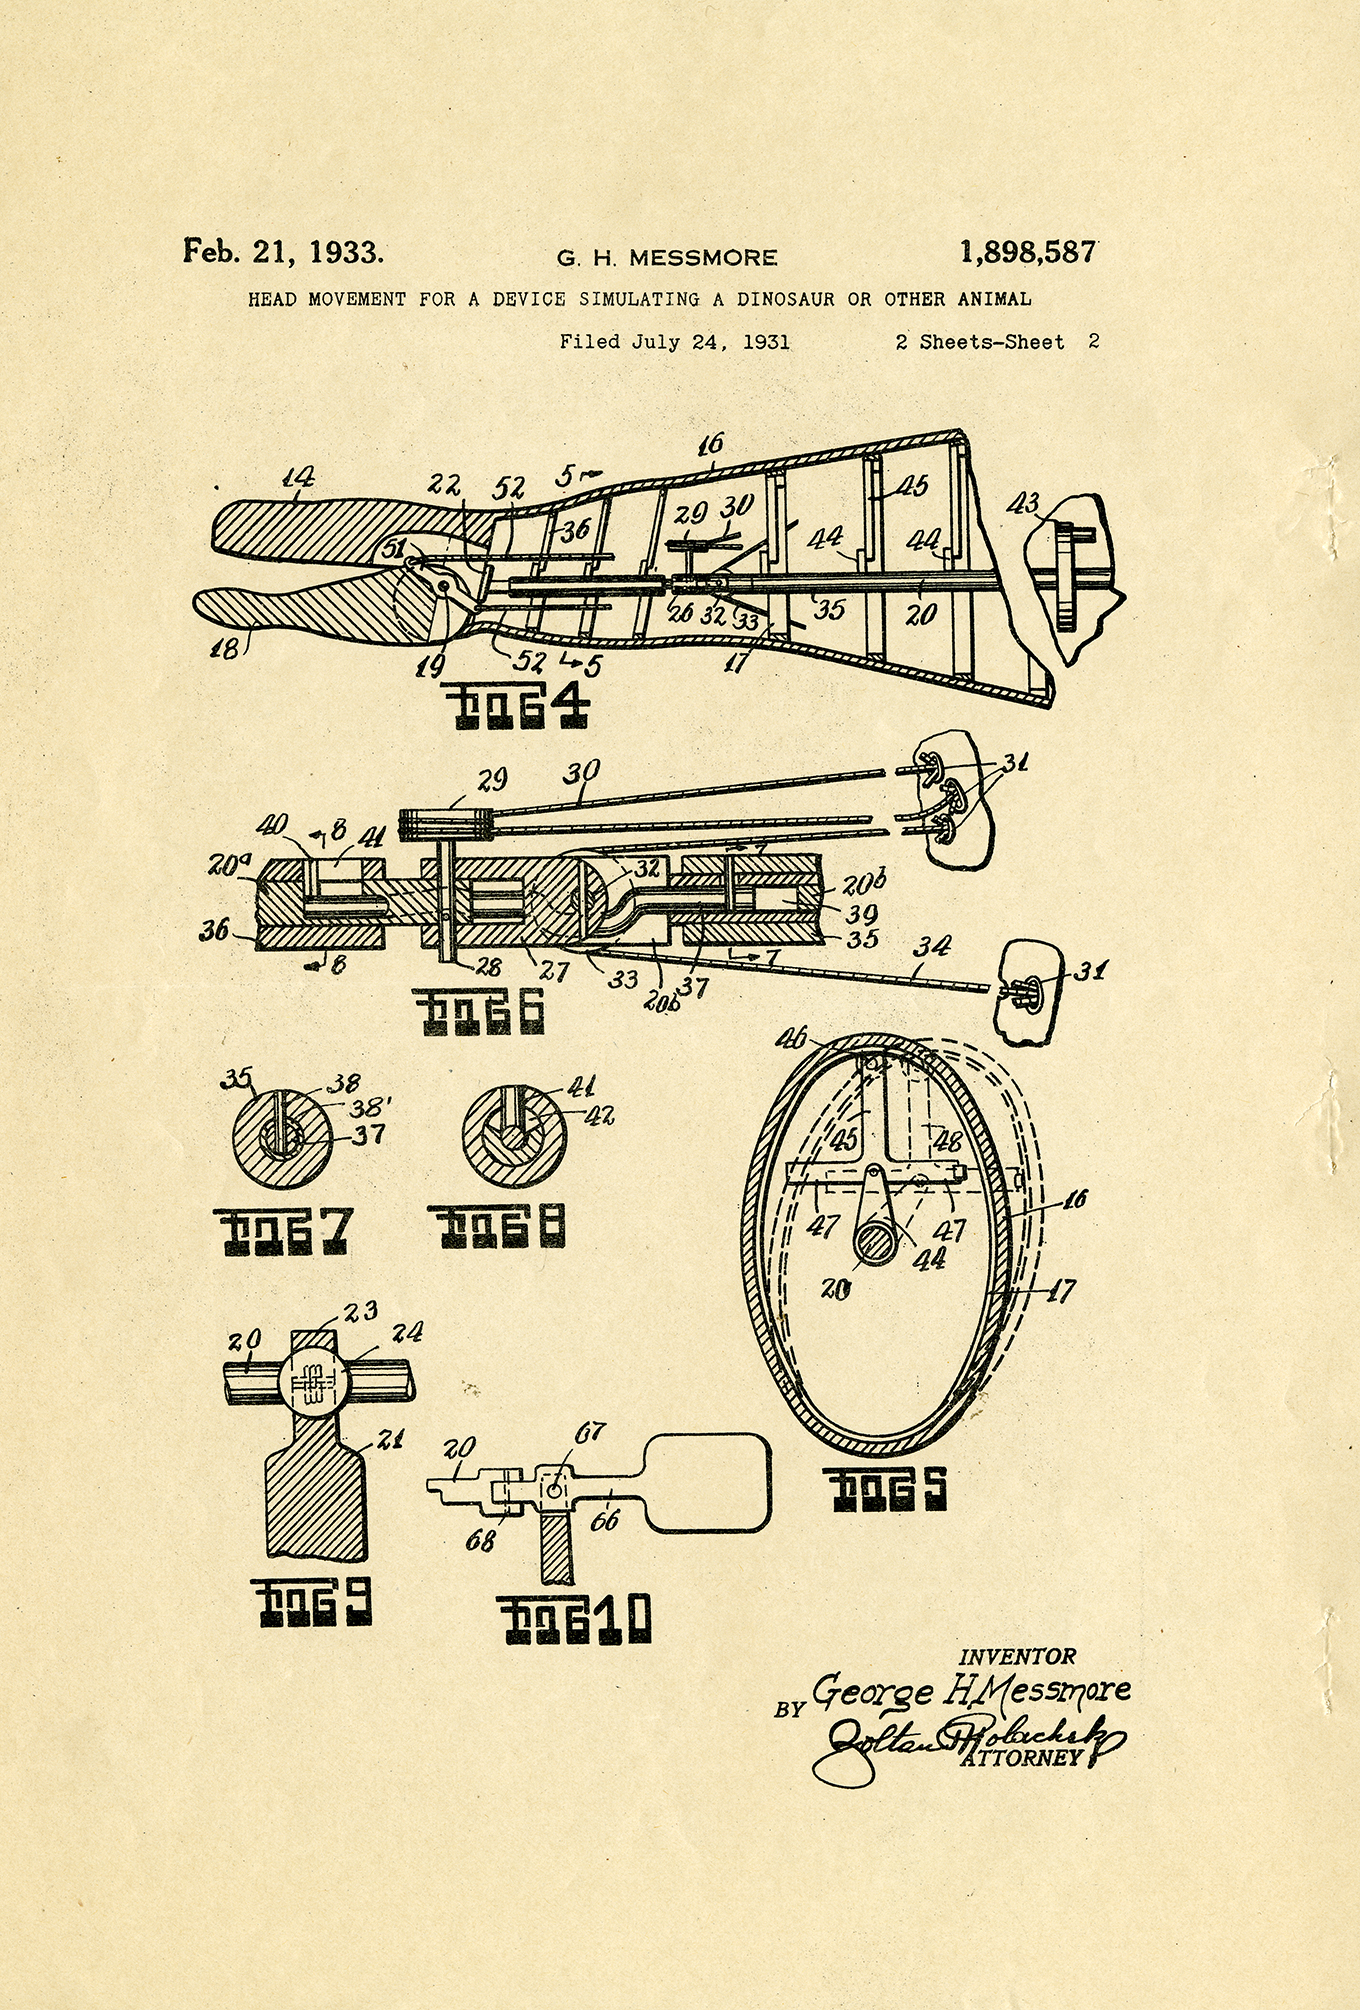 Drawing for US Patent 1,898,587, February 21, 1933.